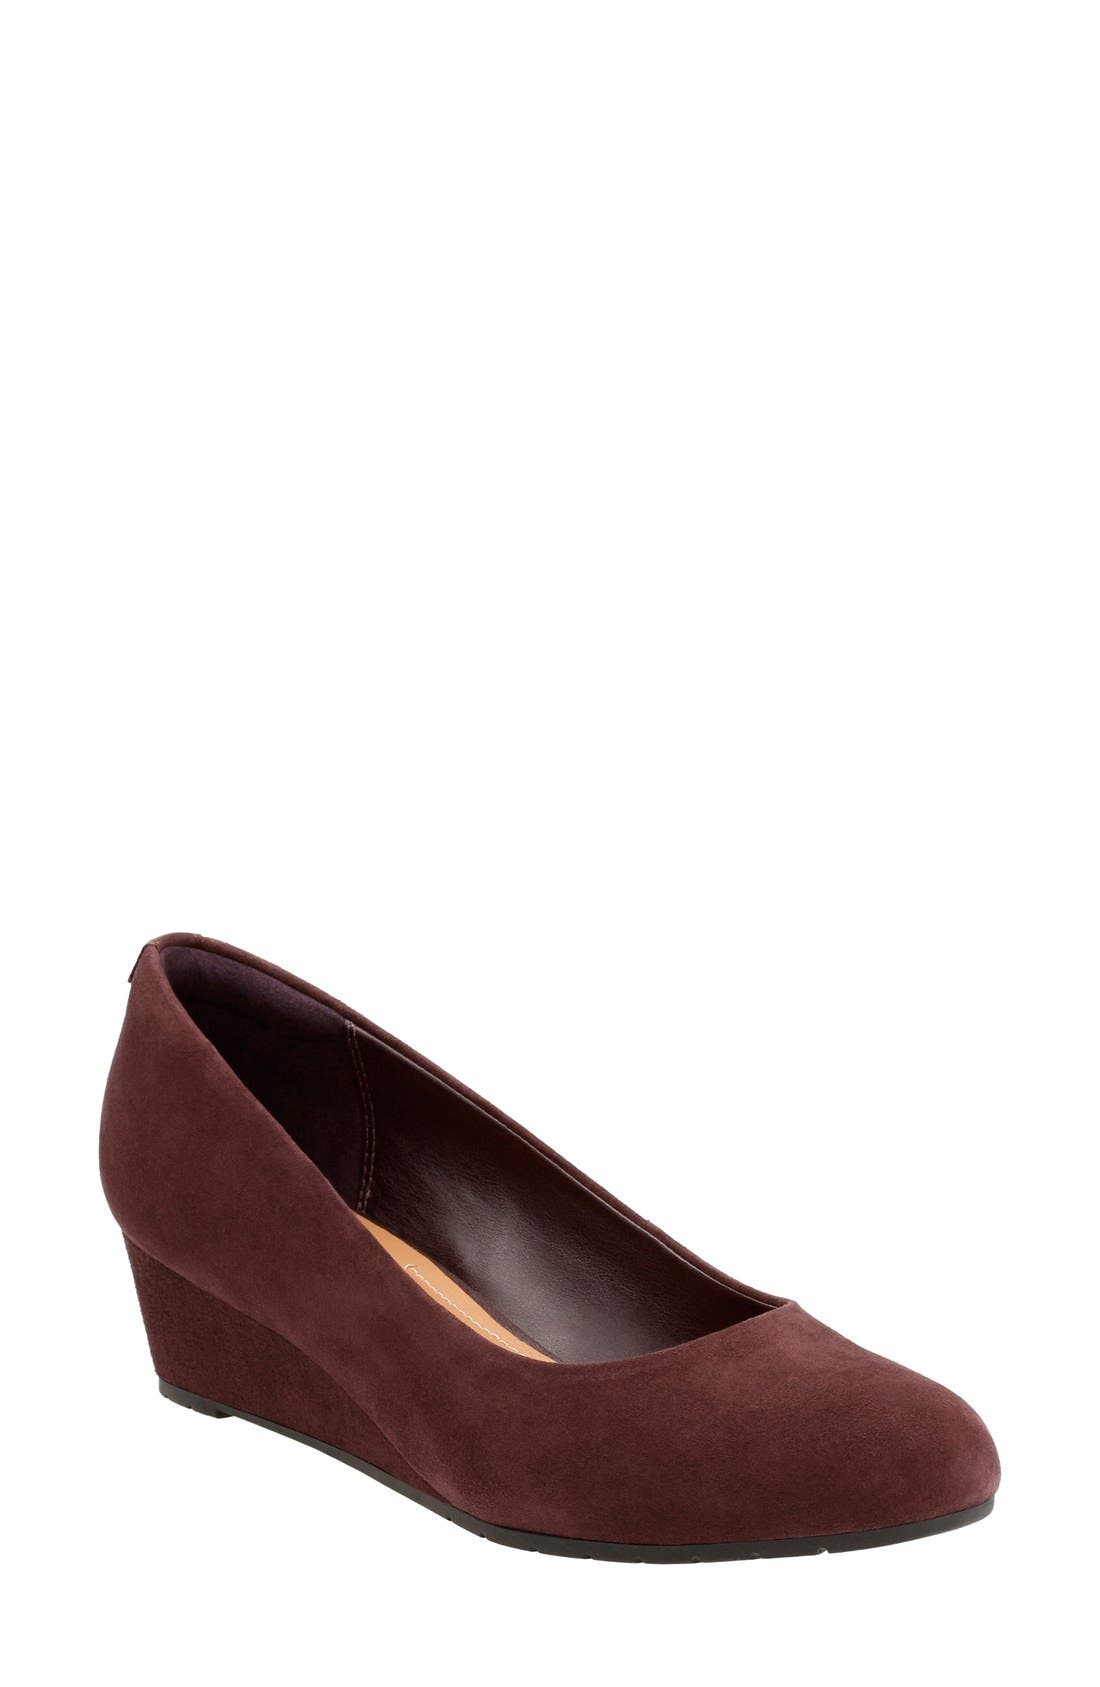 CLARKS<SUP>®</SUP> Vendra Bloom Wedge Pump